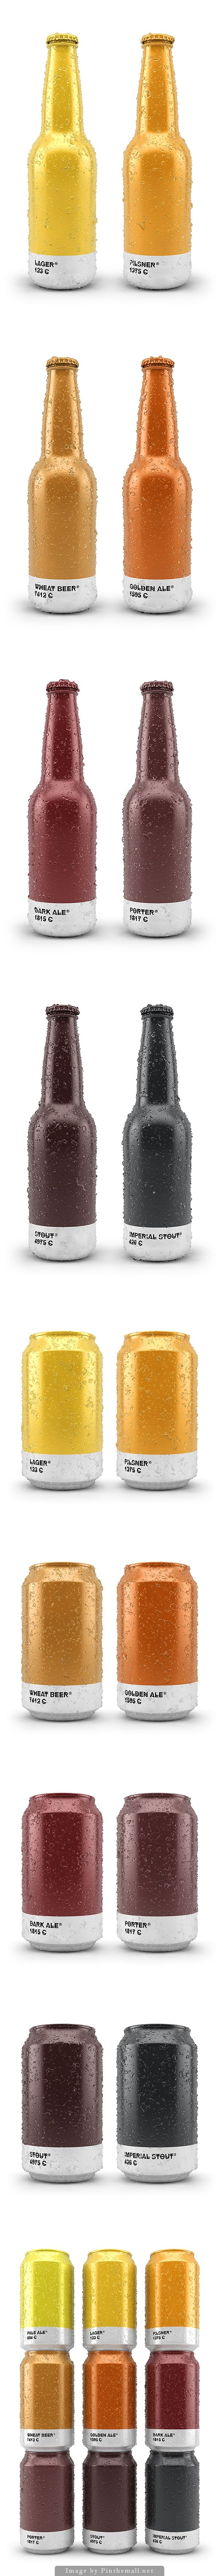 Beer packaging takes inspiration from Pantone